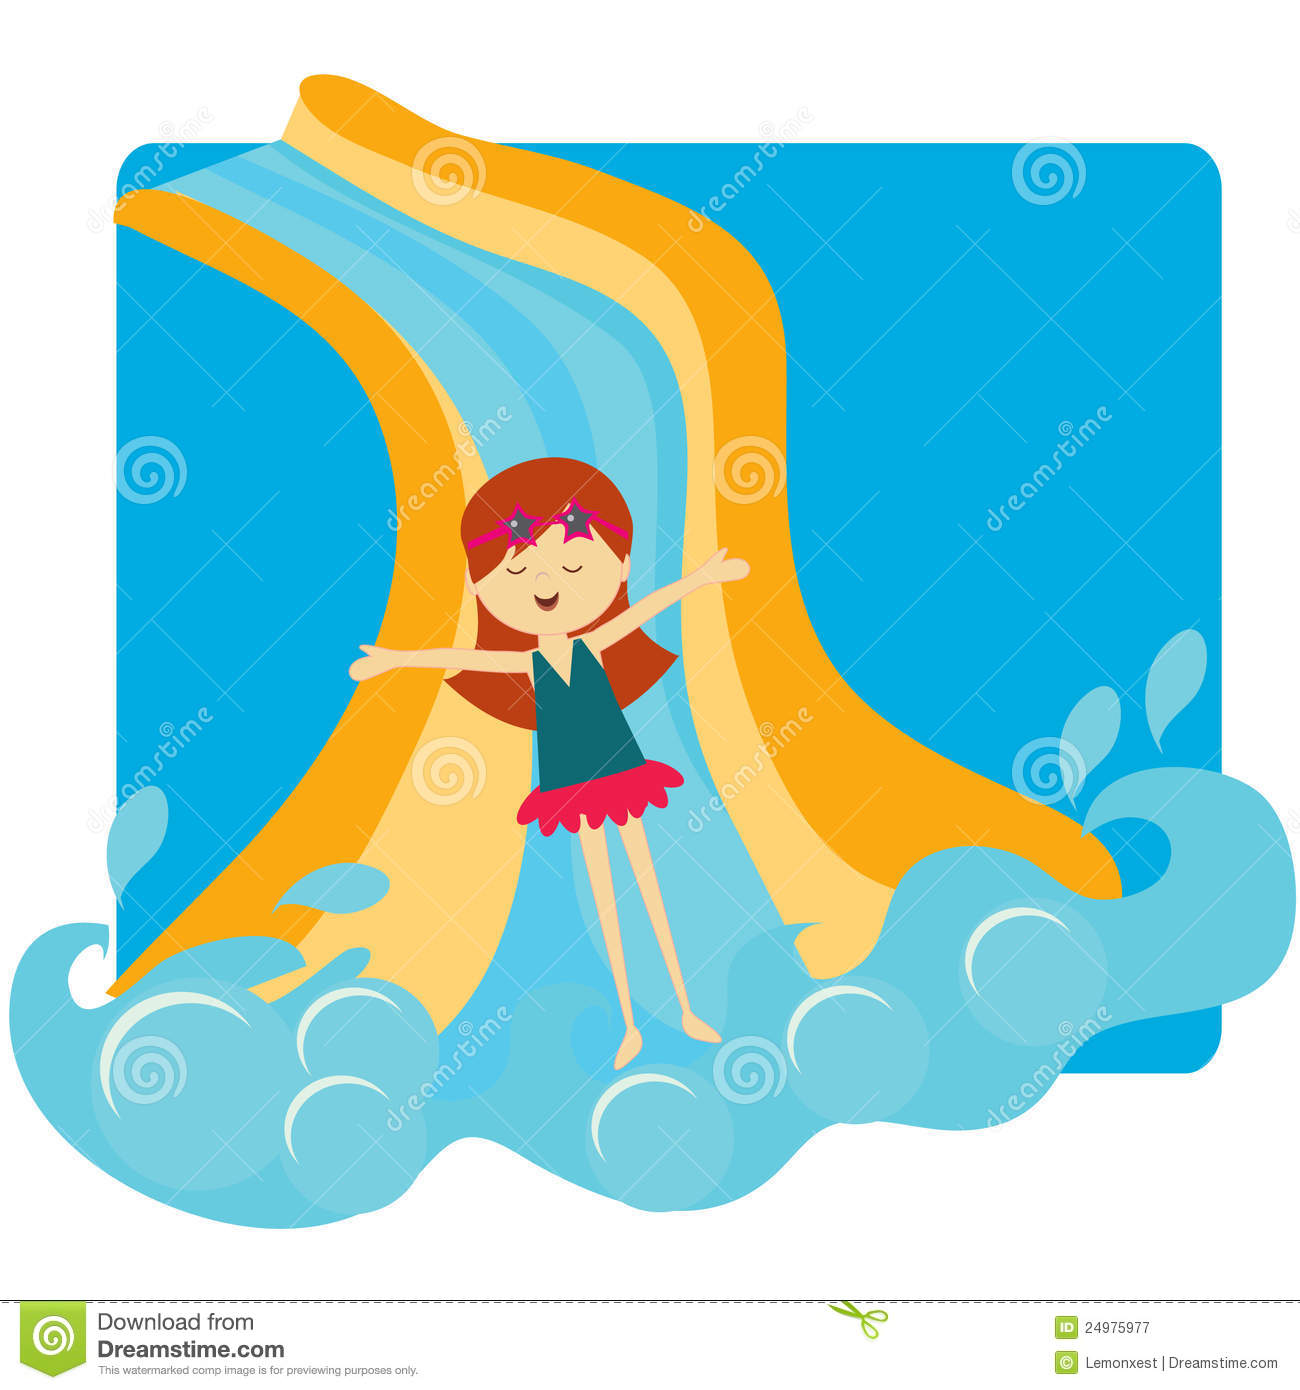 Waterslide clipart - Clipground